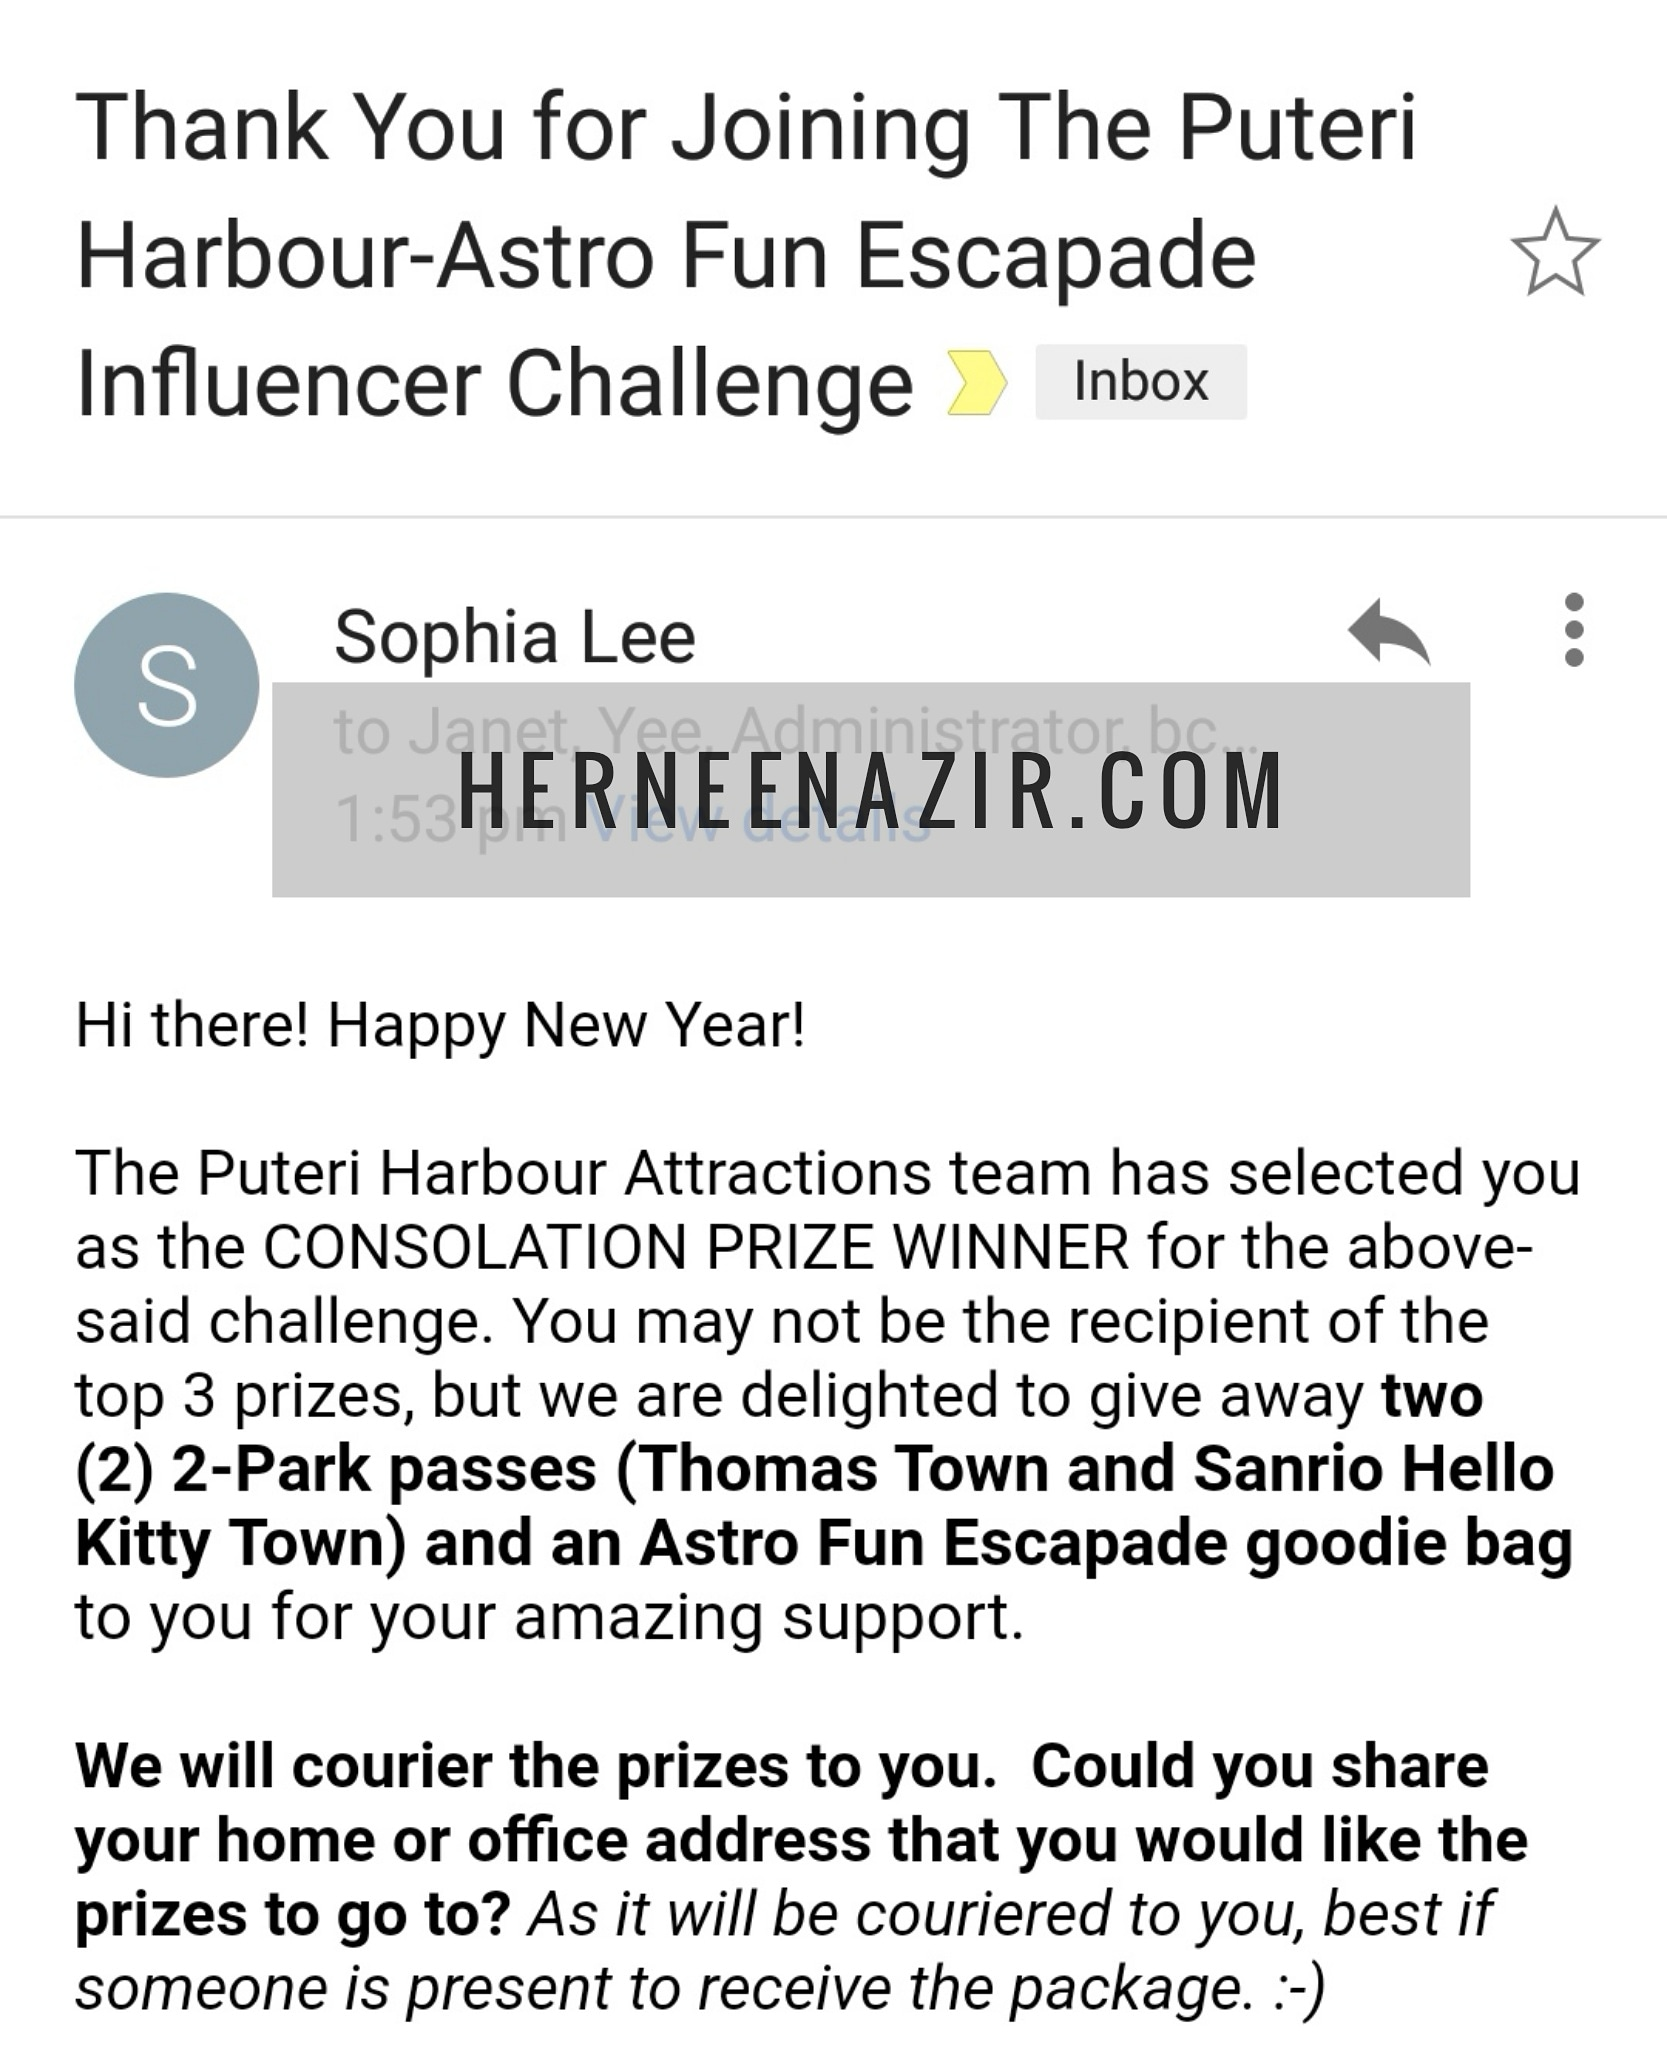 Consolation Prize Winner – The Puteri Harbour-Astro Fun Escapade Influencer Challenge